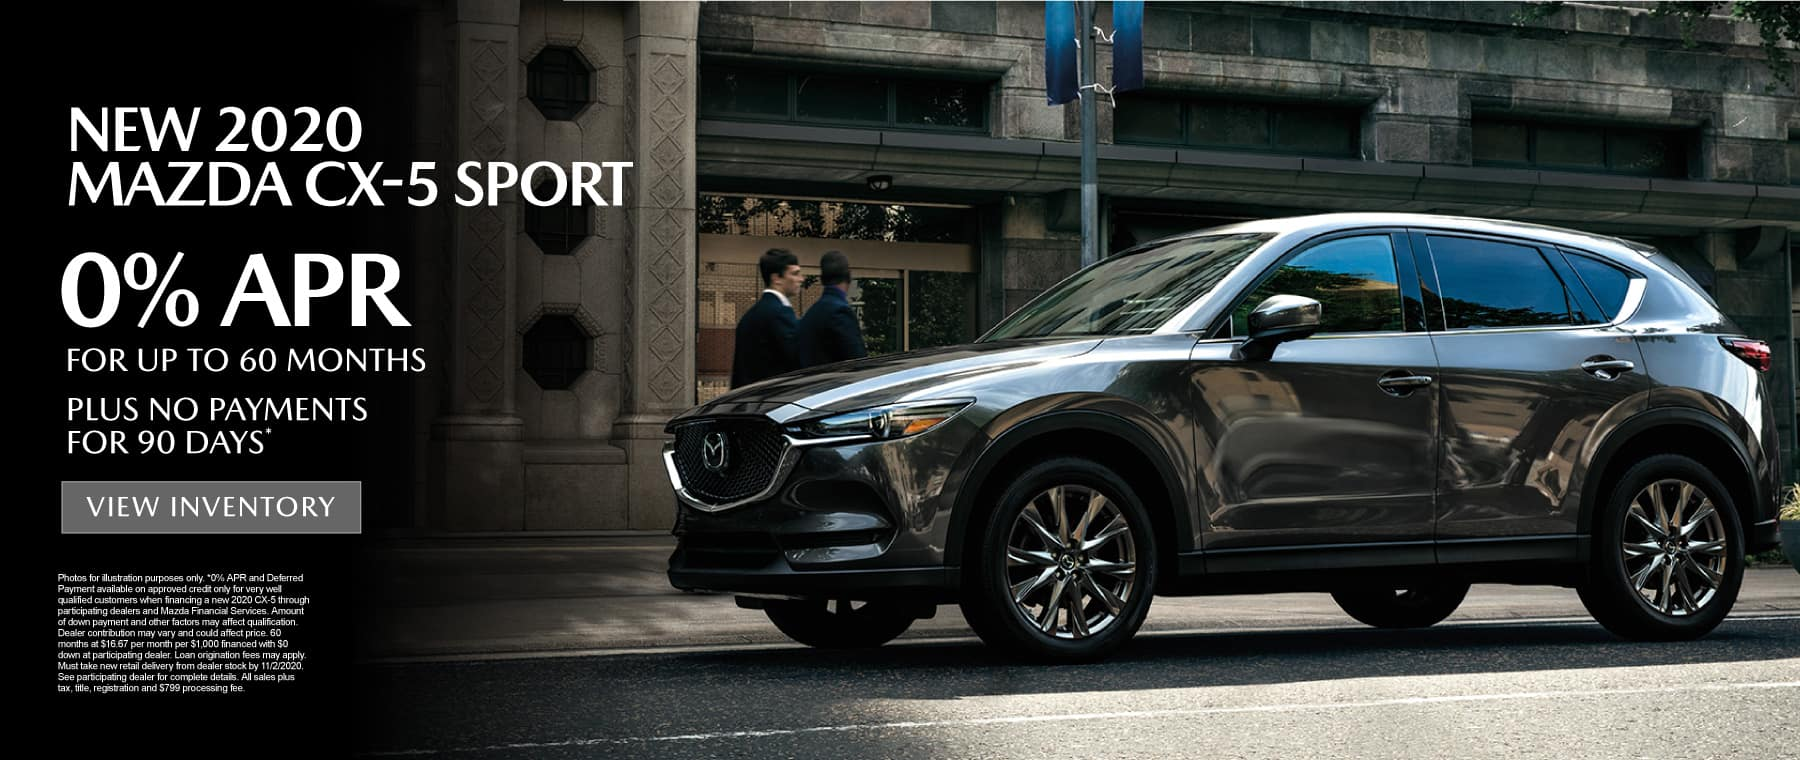 CX-5 0% APR for up to 60 months - click here to view inventory